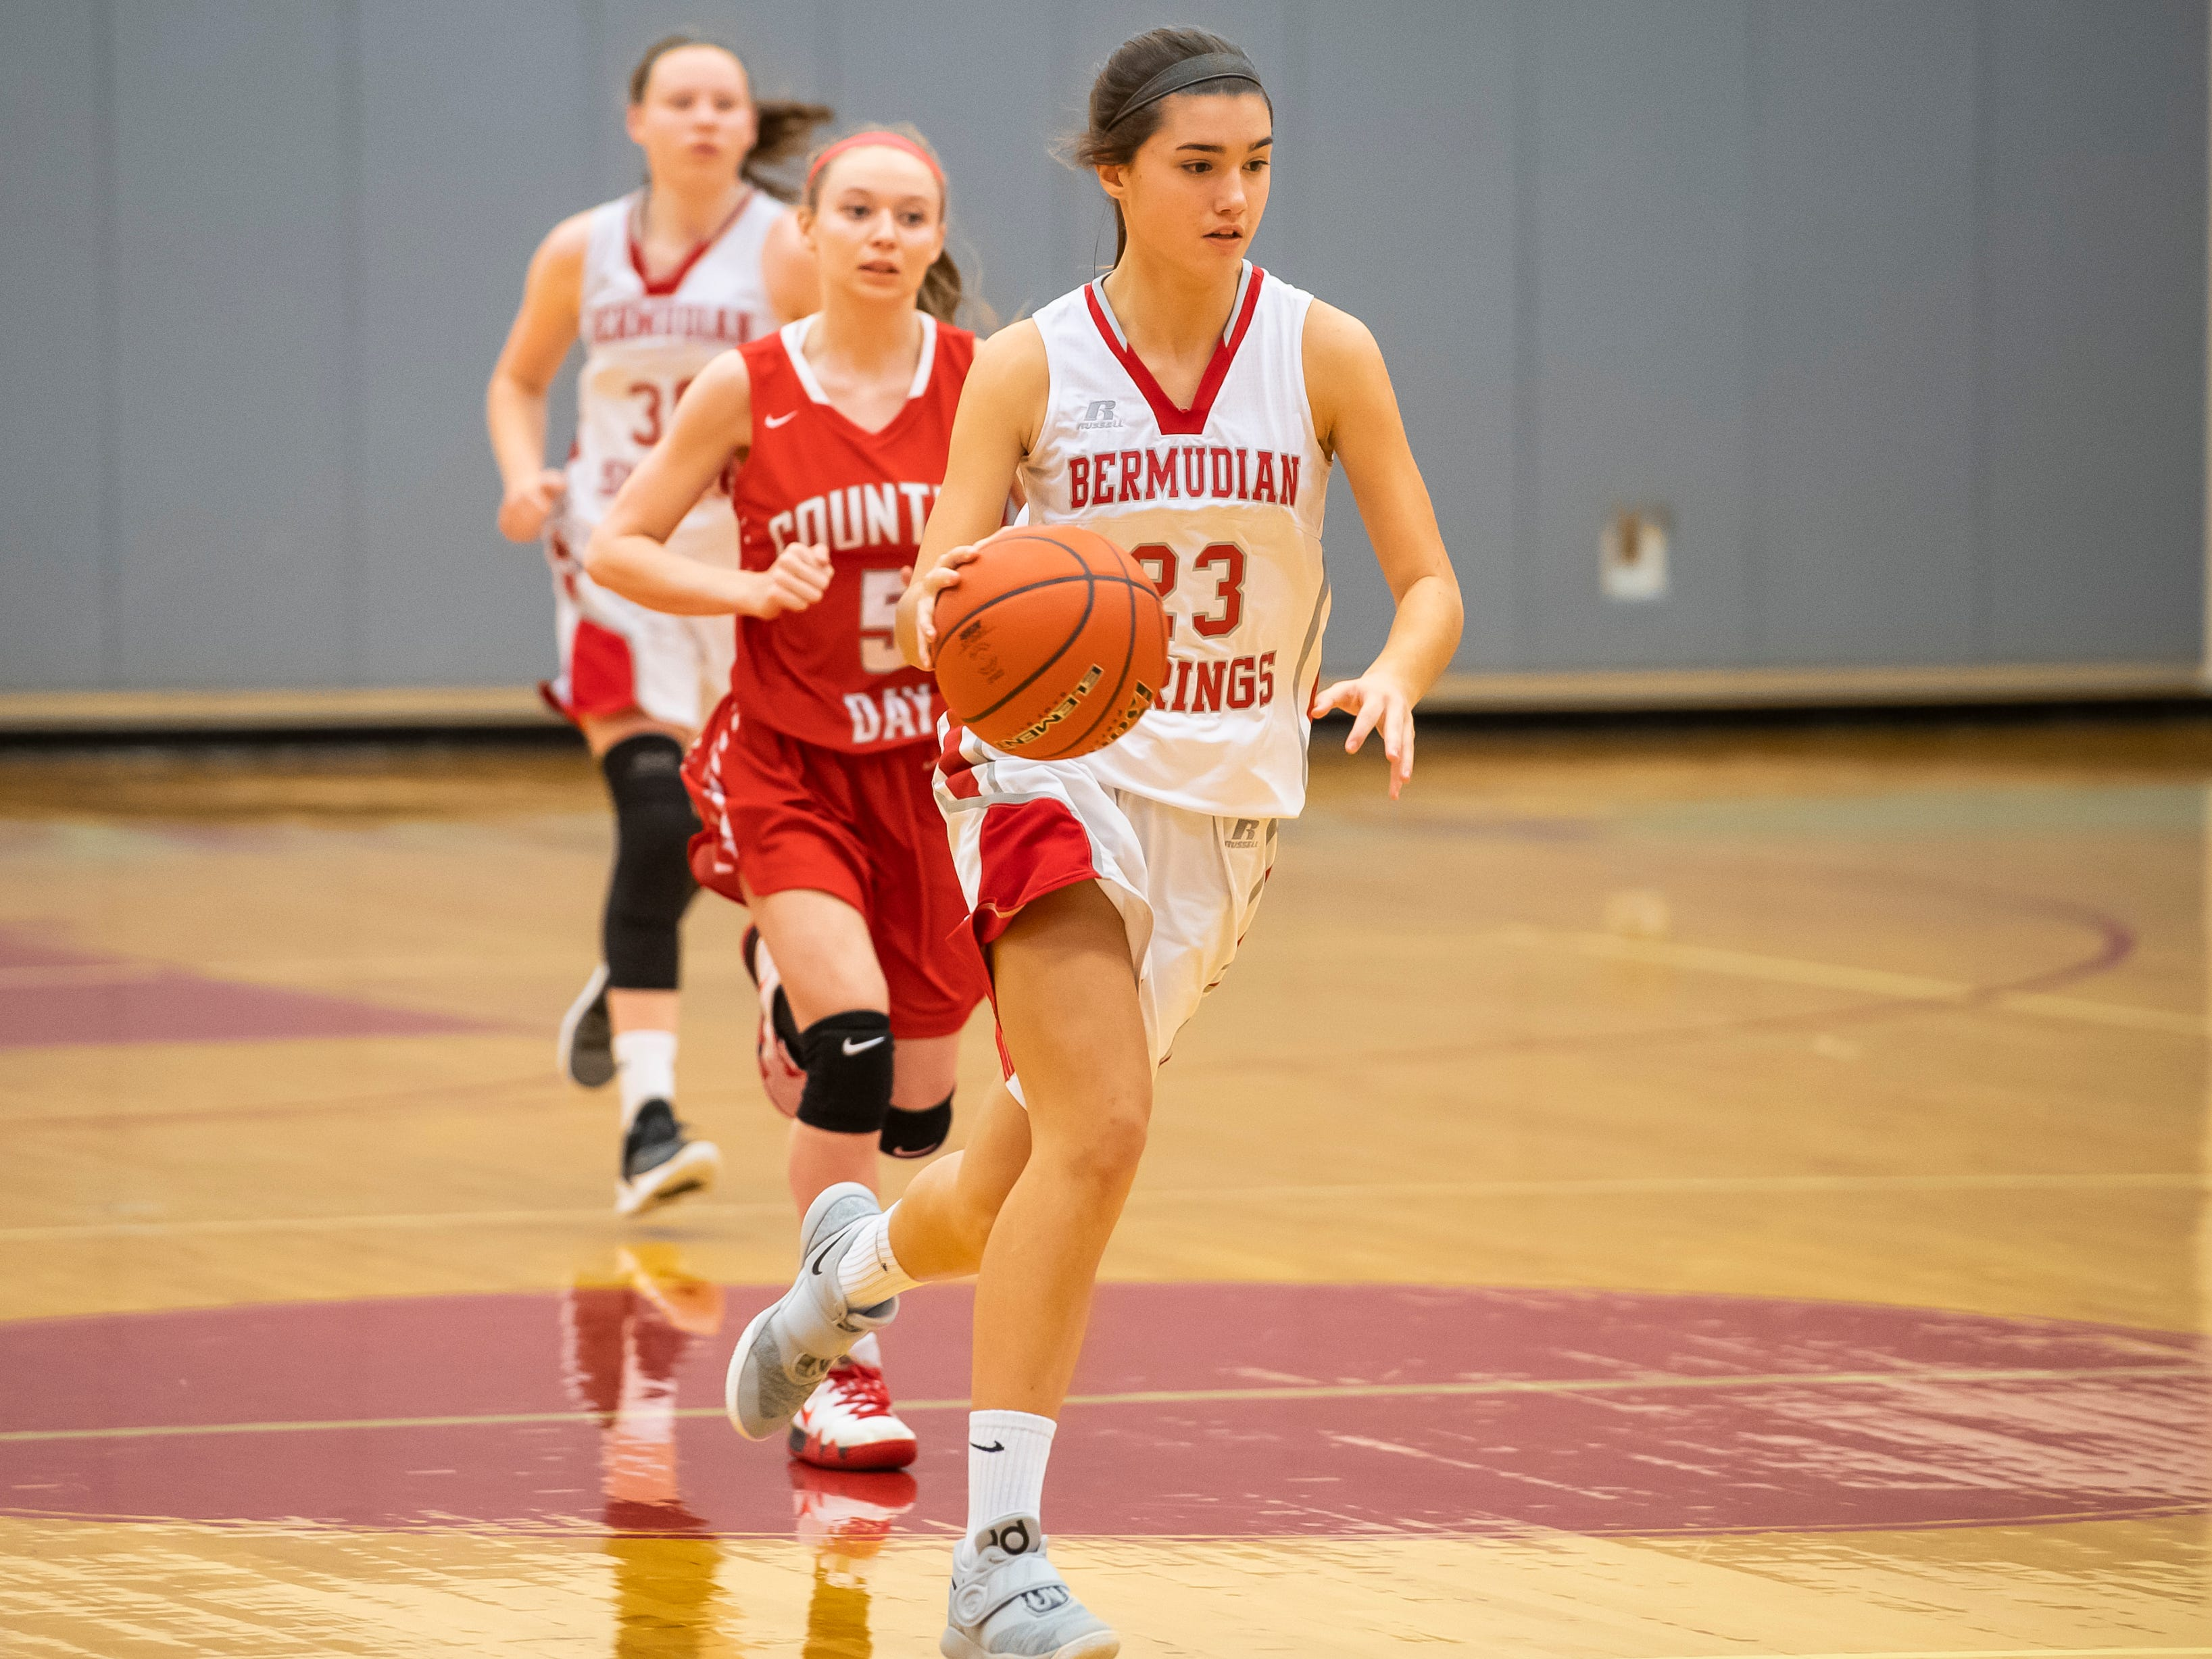 Bermudian Springs' Bailey Oehmig dribbles down the court during play against York Country Day School at Bermudian Springs High School on Monday, January 14, 2019. The Eagles won 59-20.